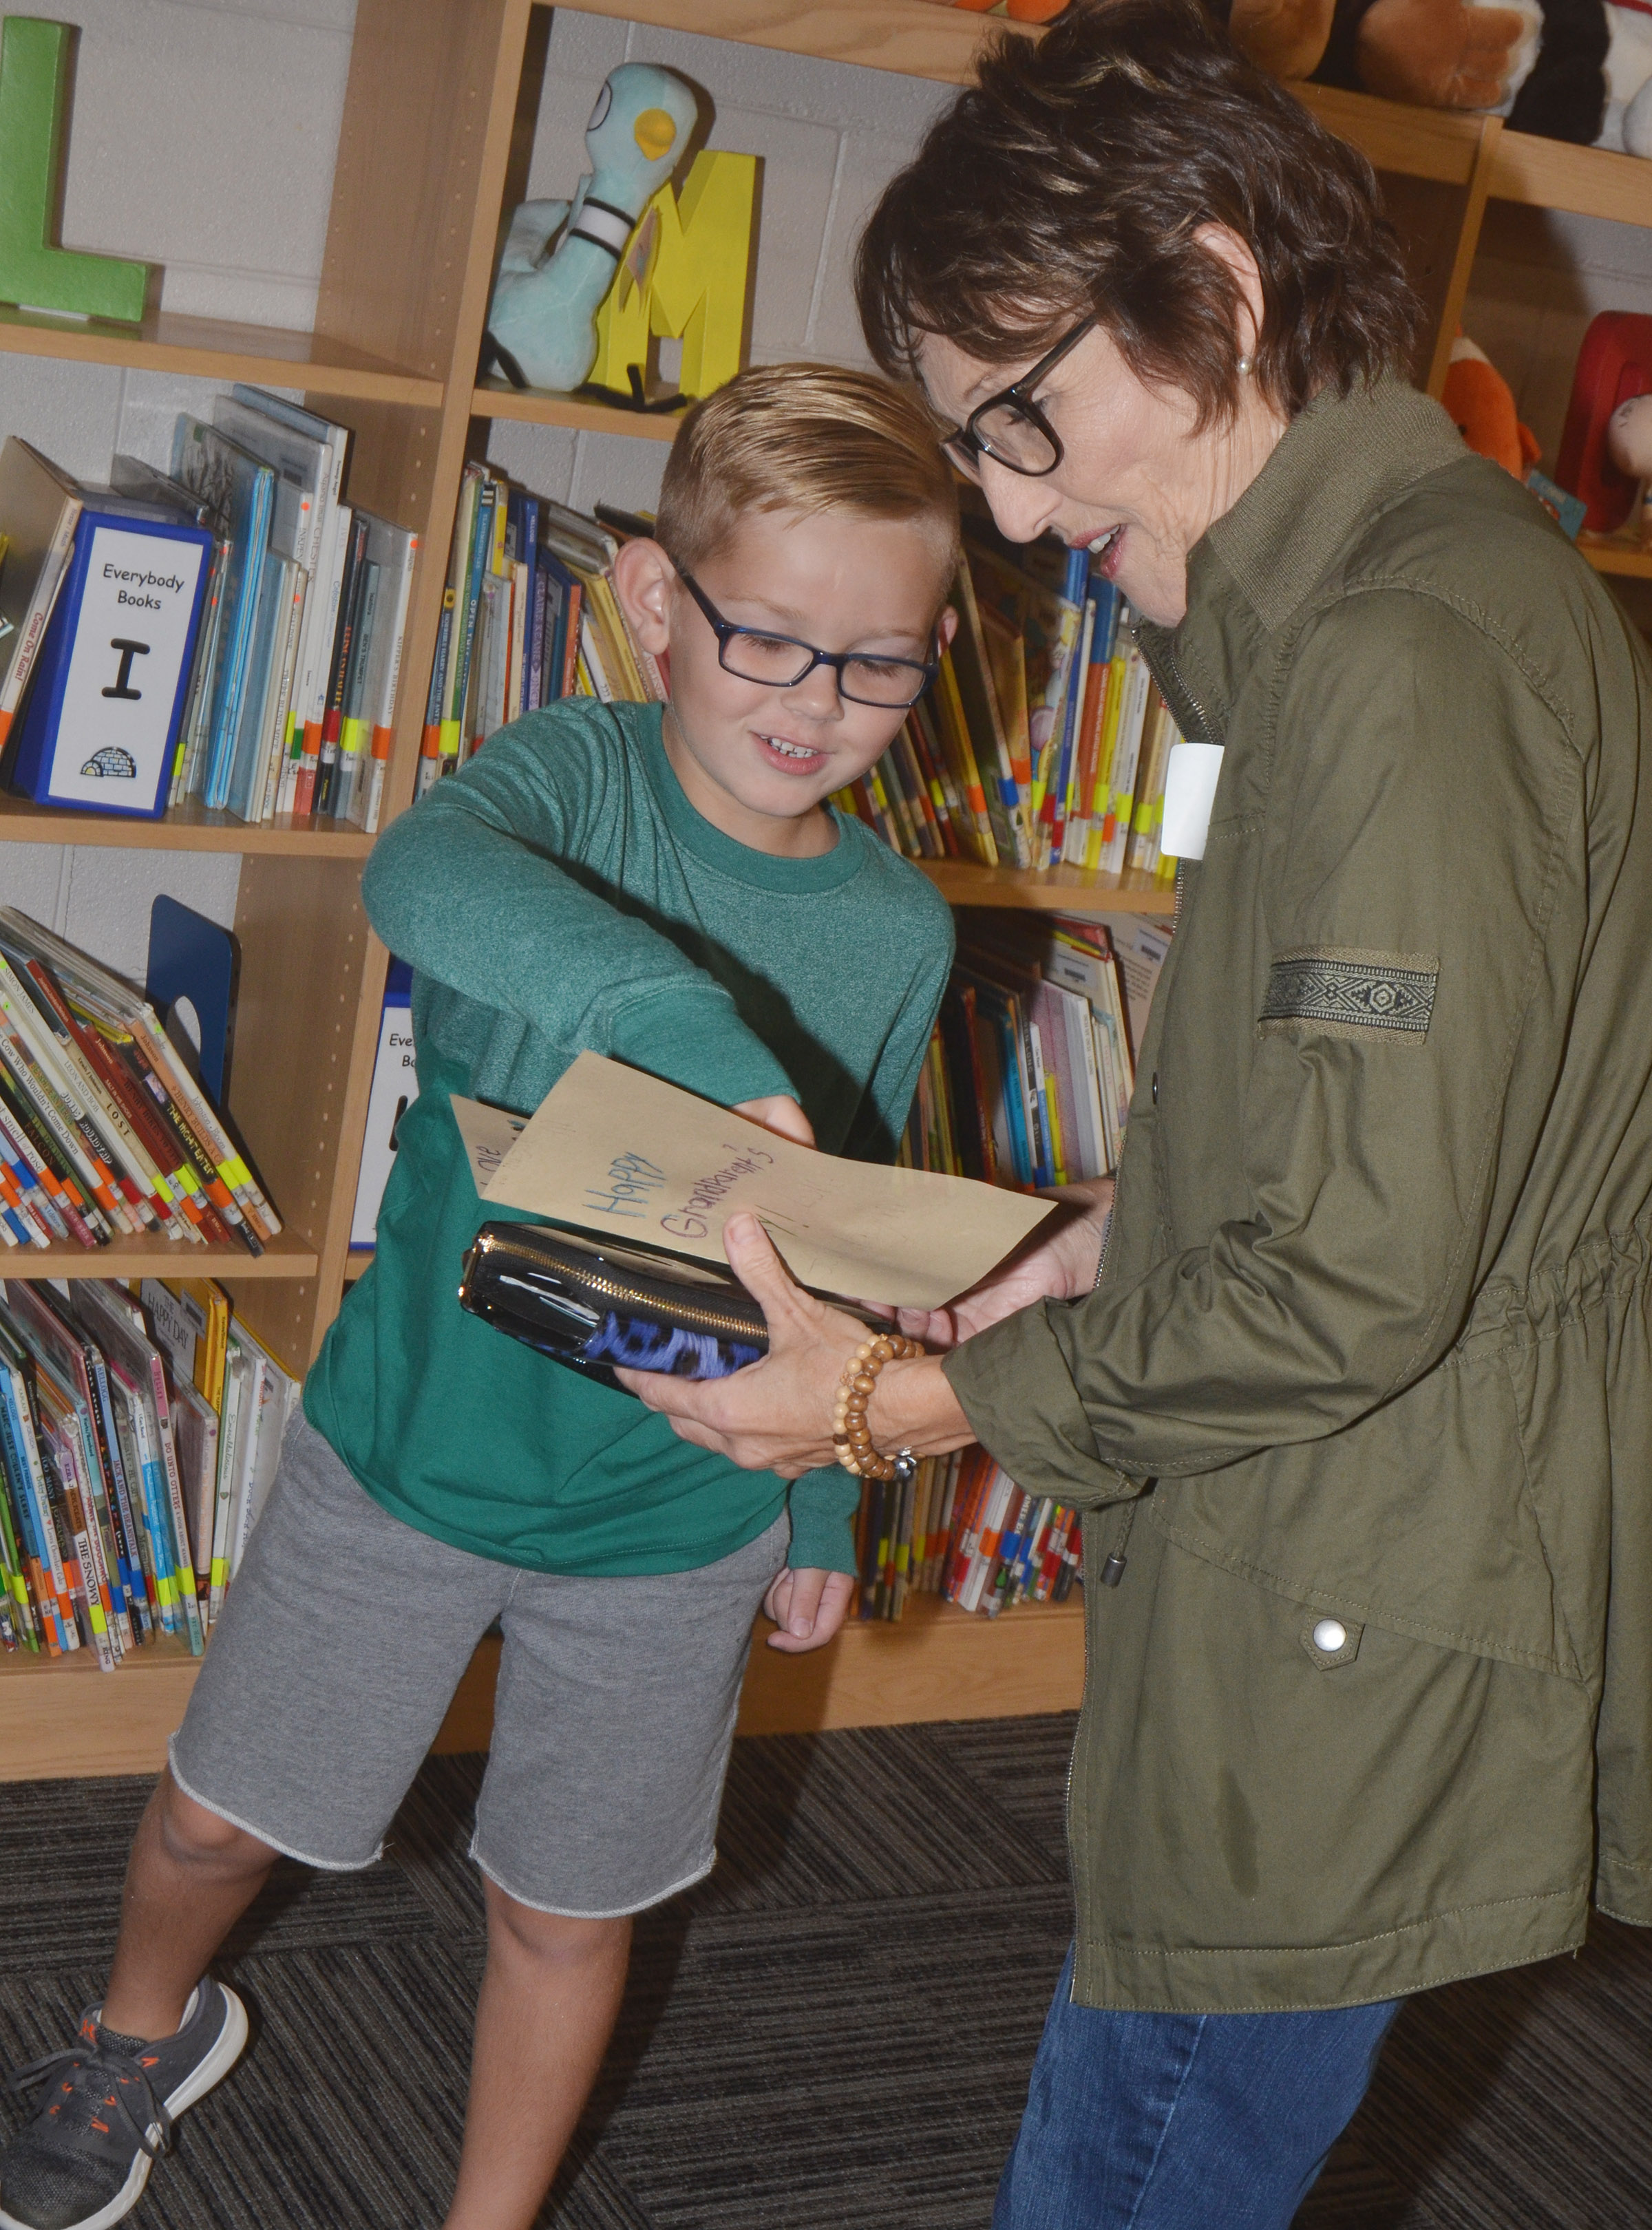 CES first-grader John Hagan Newton looks at a book with his grandmother.